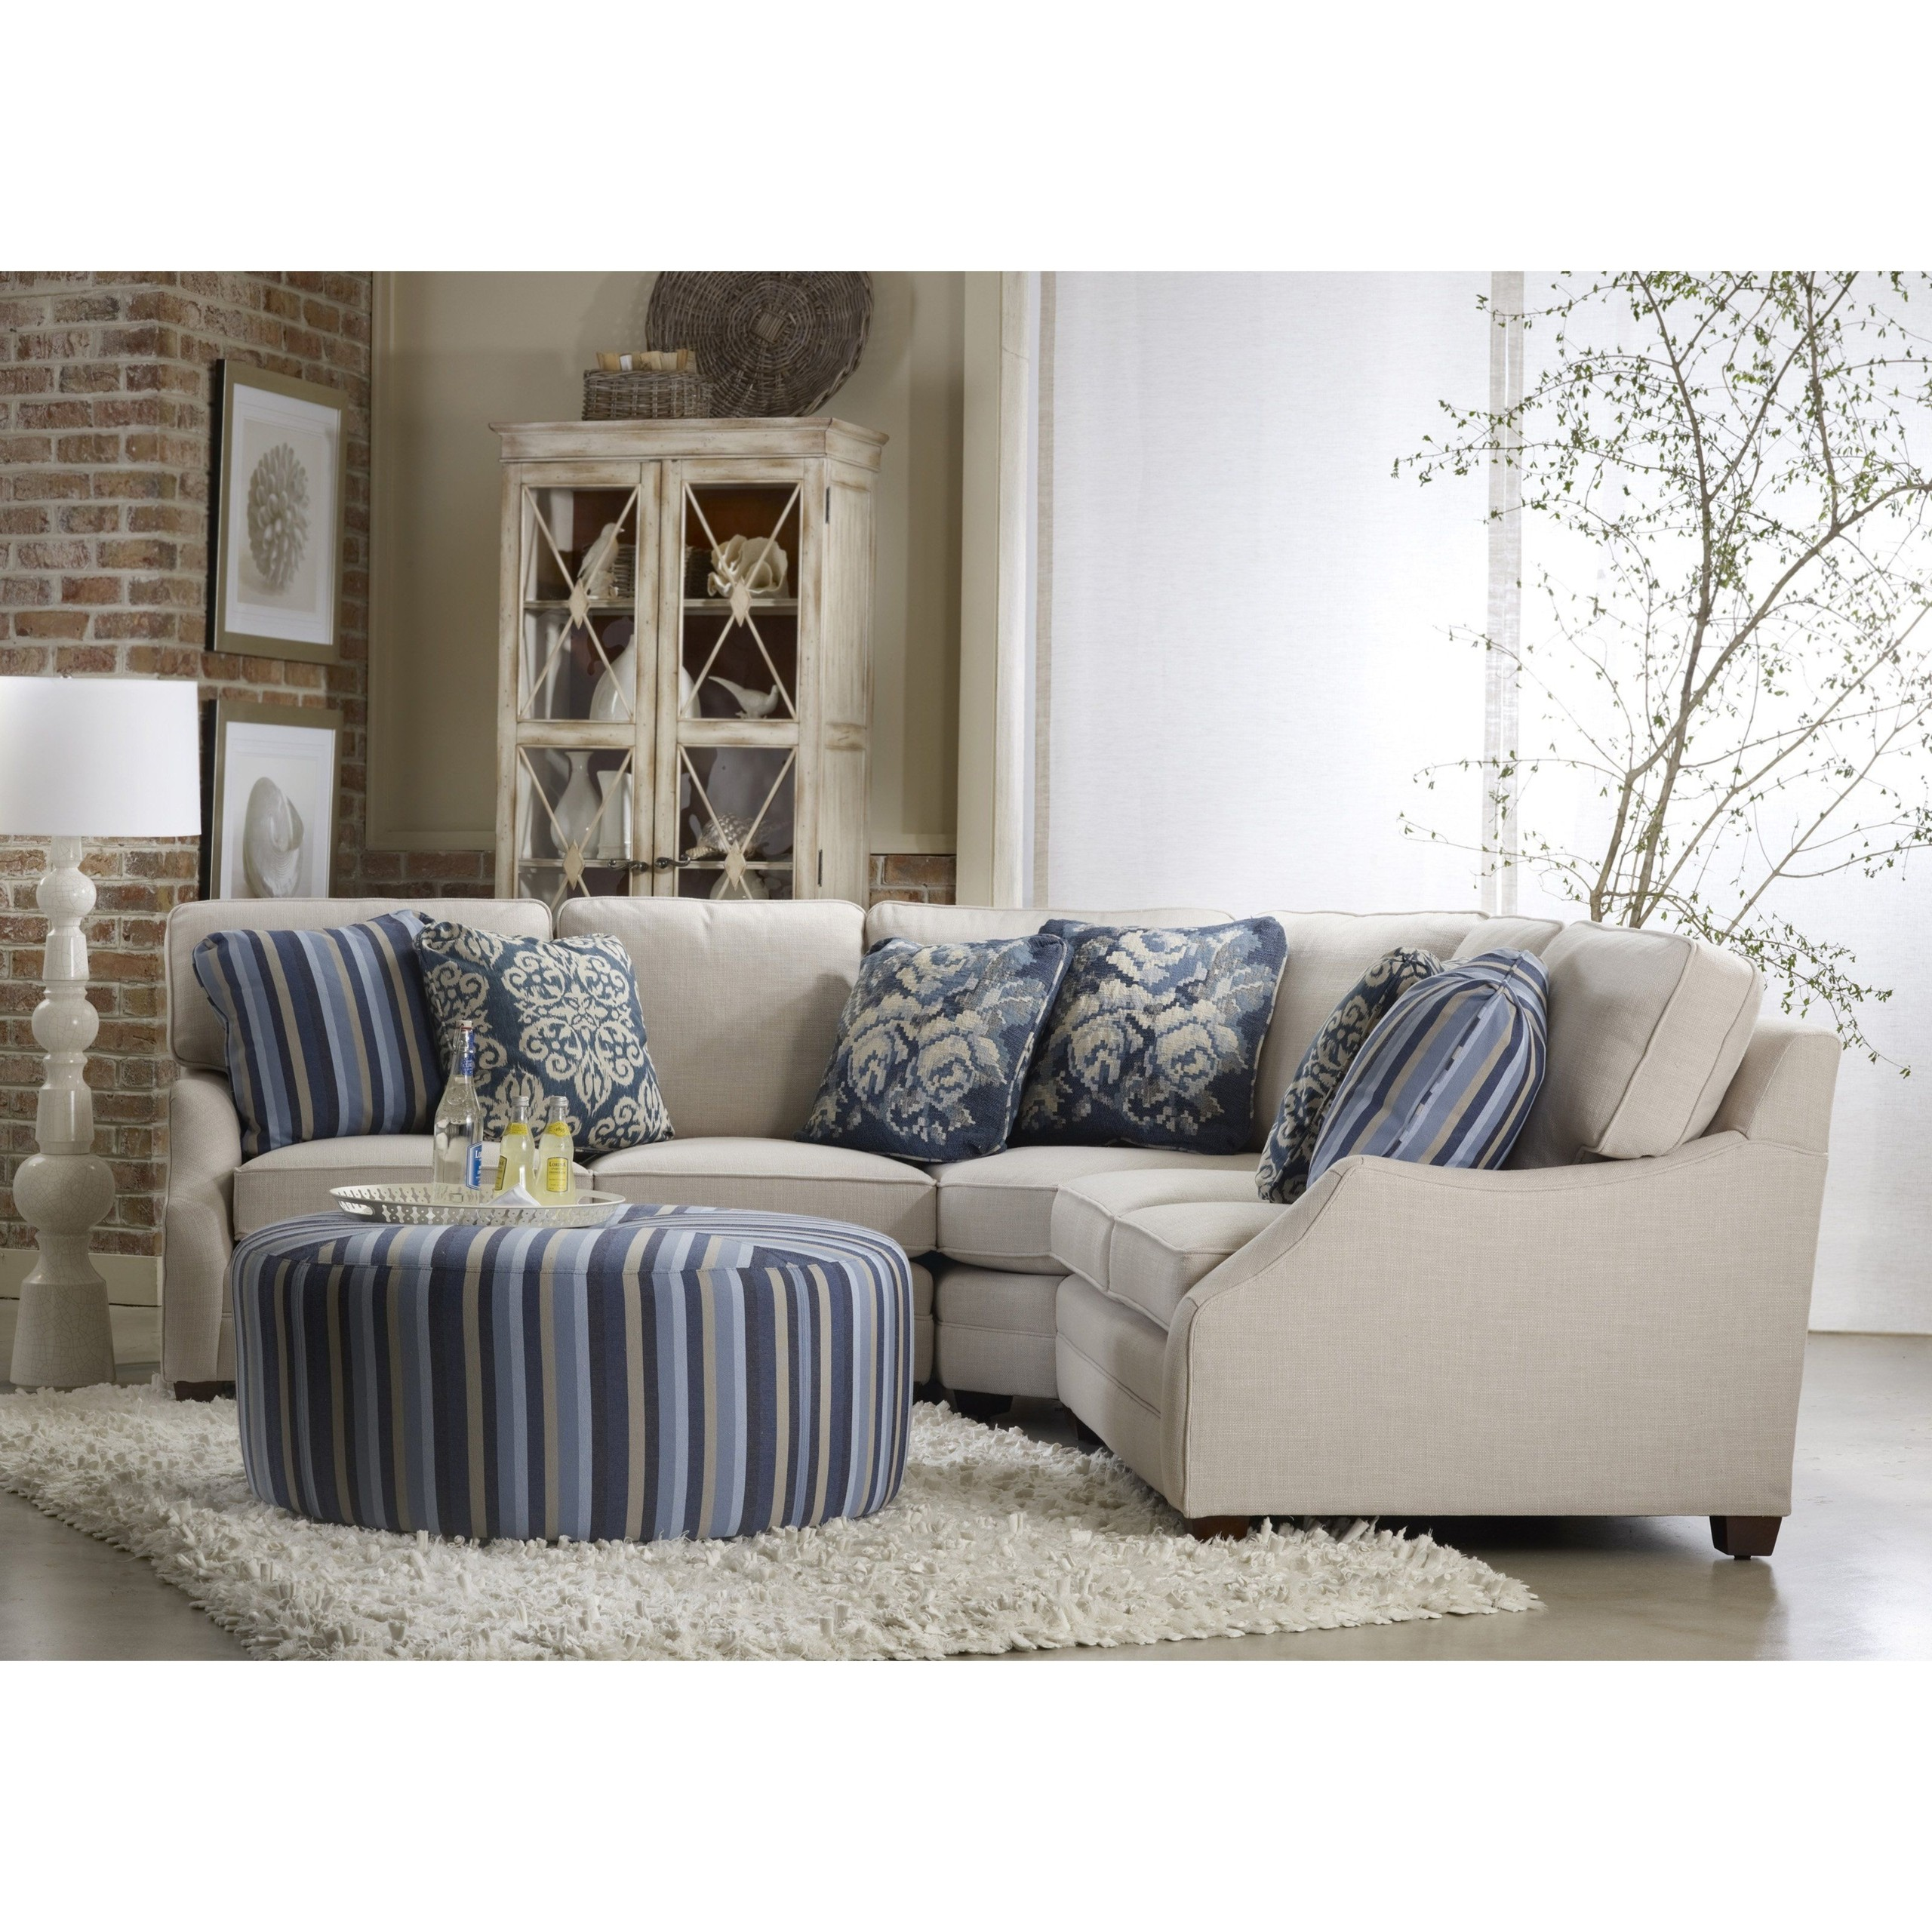 sectional sofas recliners fairmont cooper sofa dillards small with recliner ideas on foter